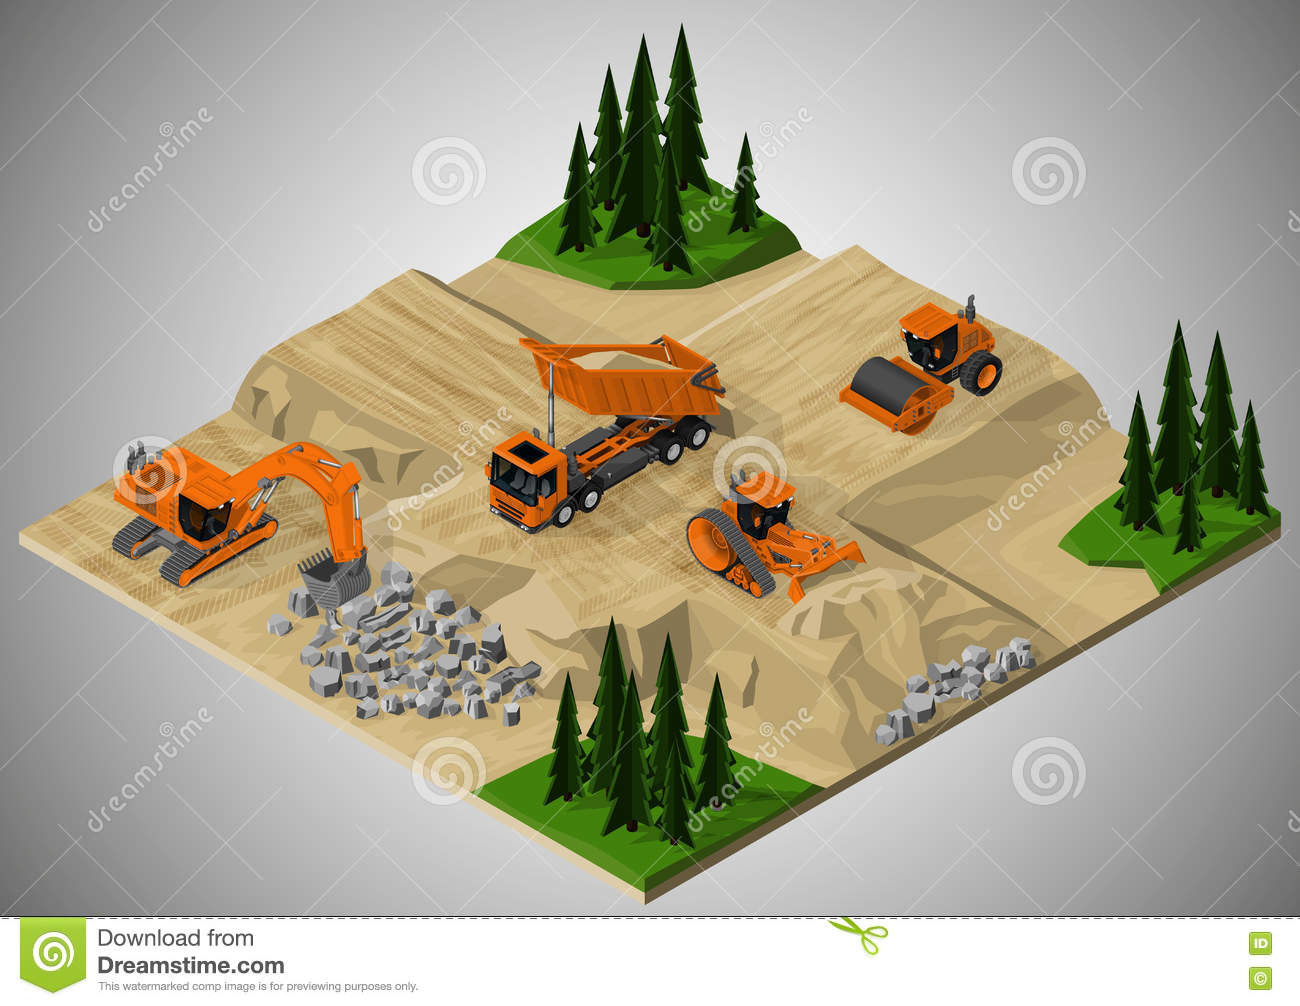 Road construction and machinery involved.